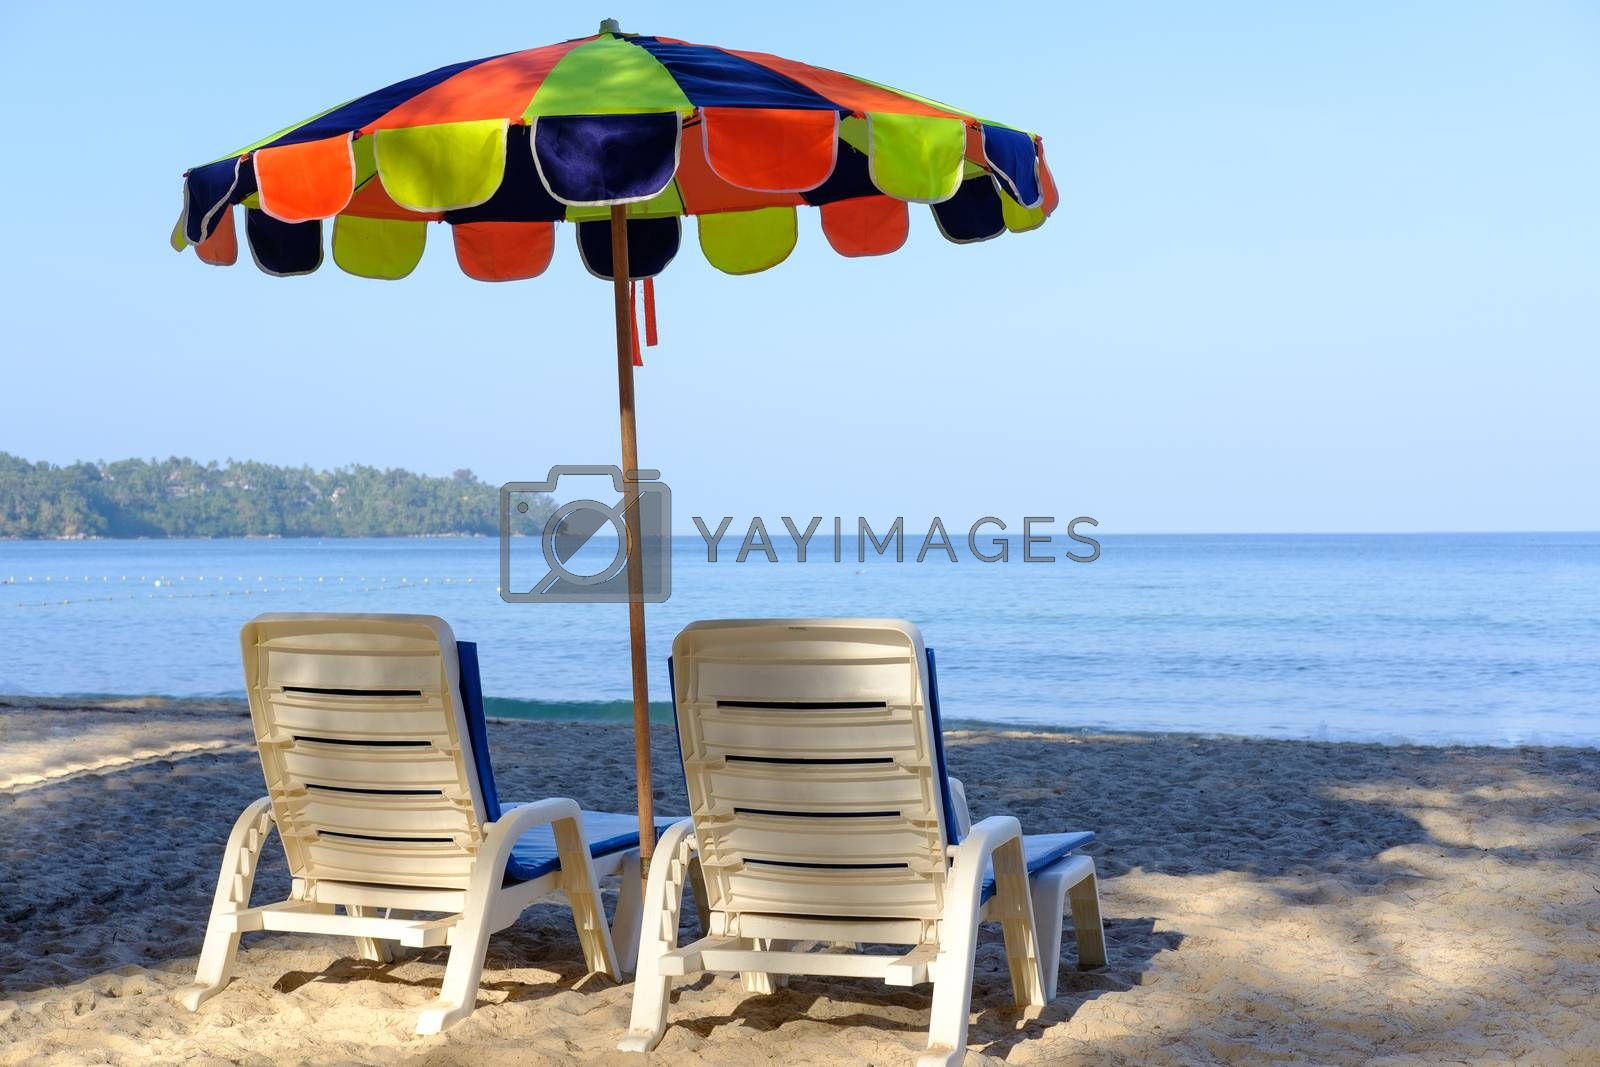 Beach bed and cheerful colorful parasol on tropical beach with blue sky and blue sea. Closeup of Back view beach chairs and umbrella for  summer vacation and holiday concept.